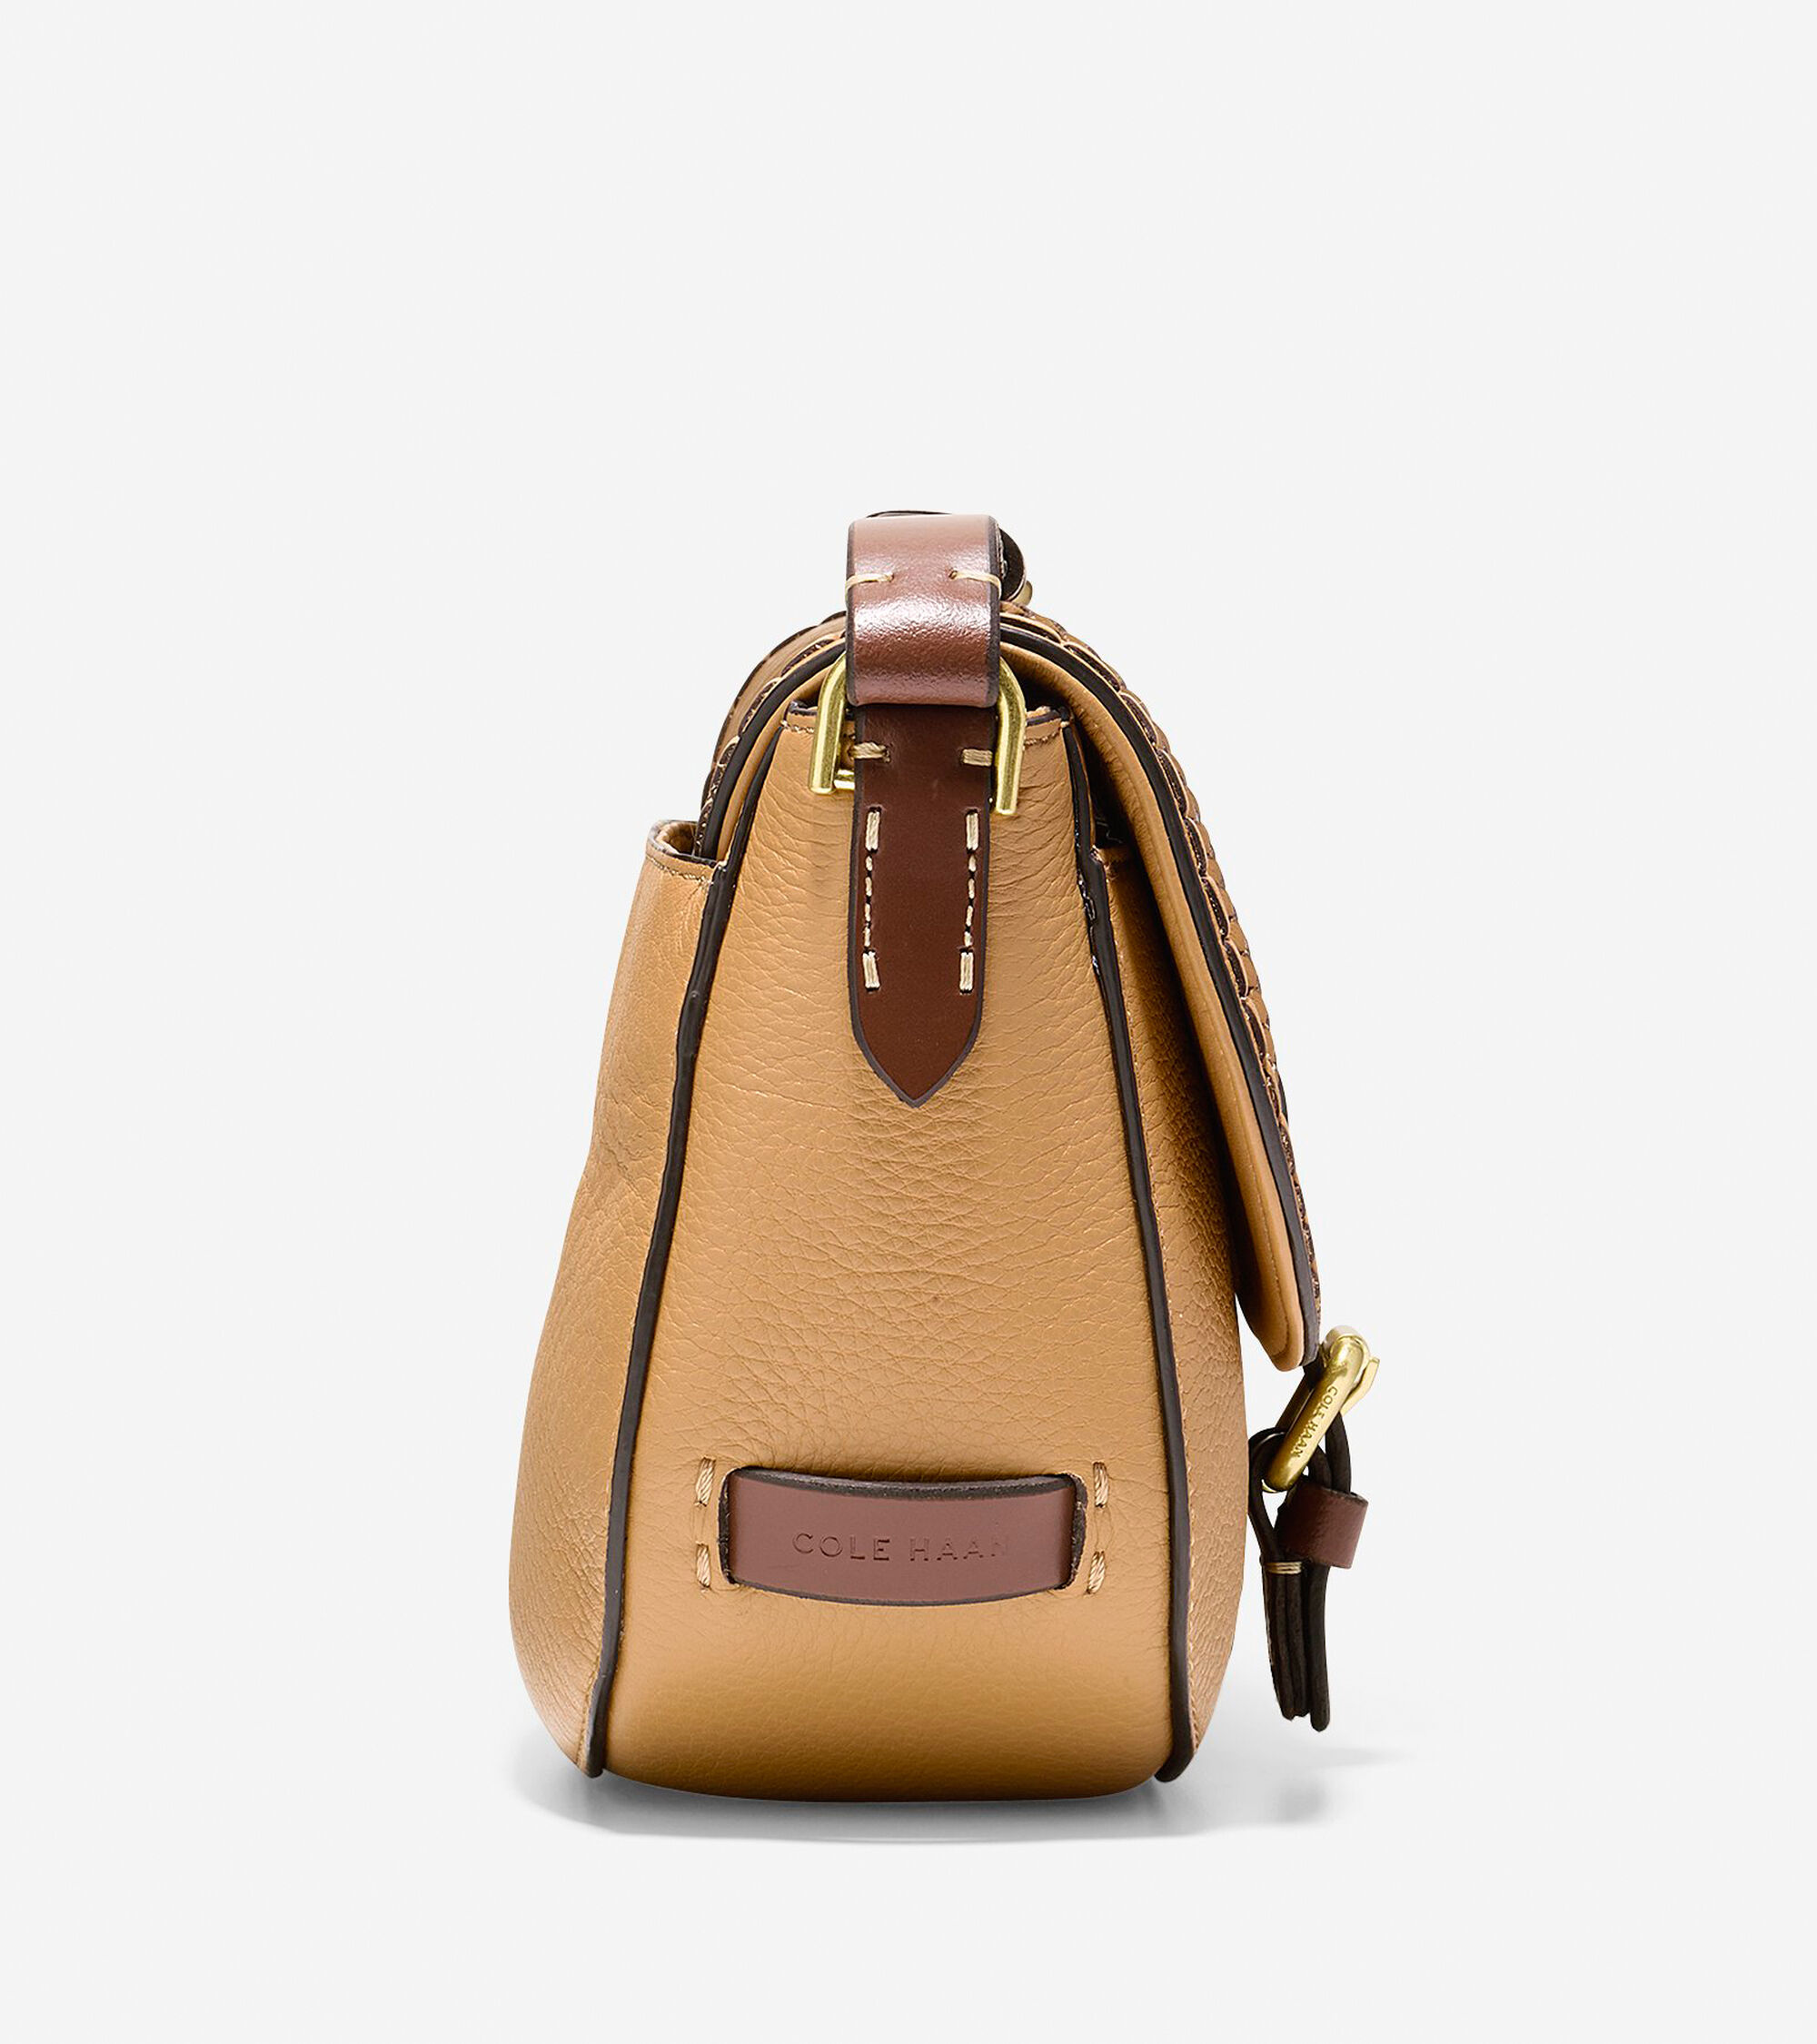 efaa56cca407 Women s Loralie Whipstitched Mini Saddle Bag in Camel